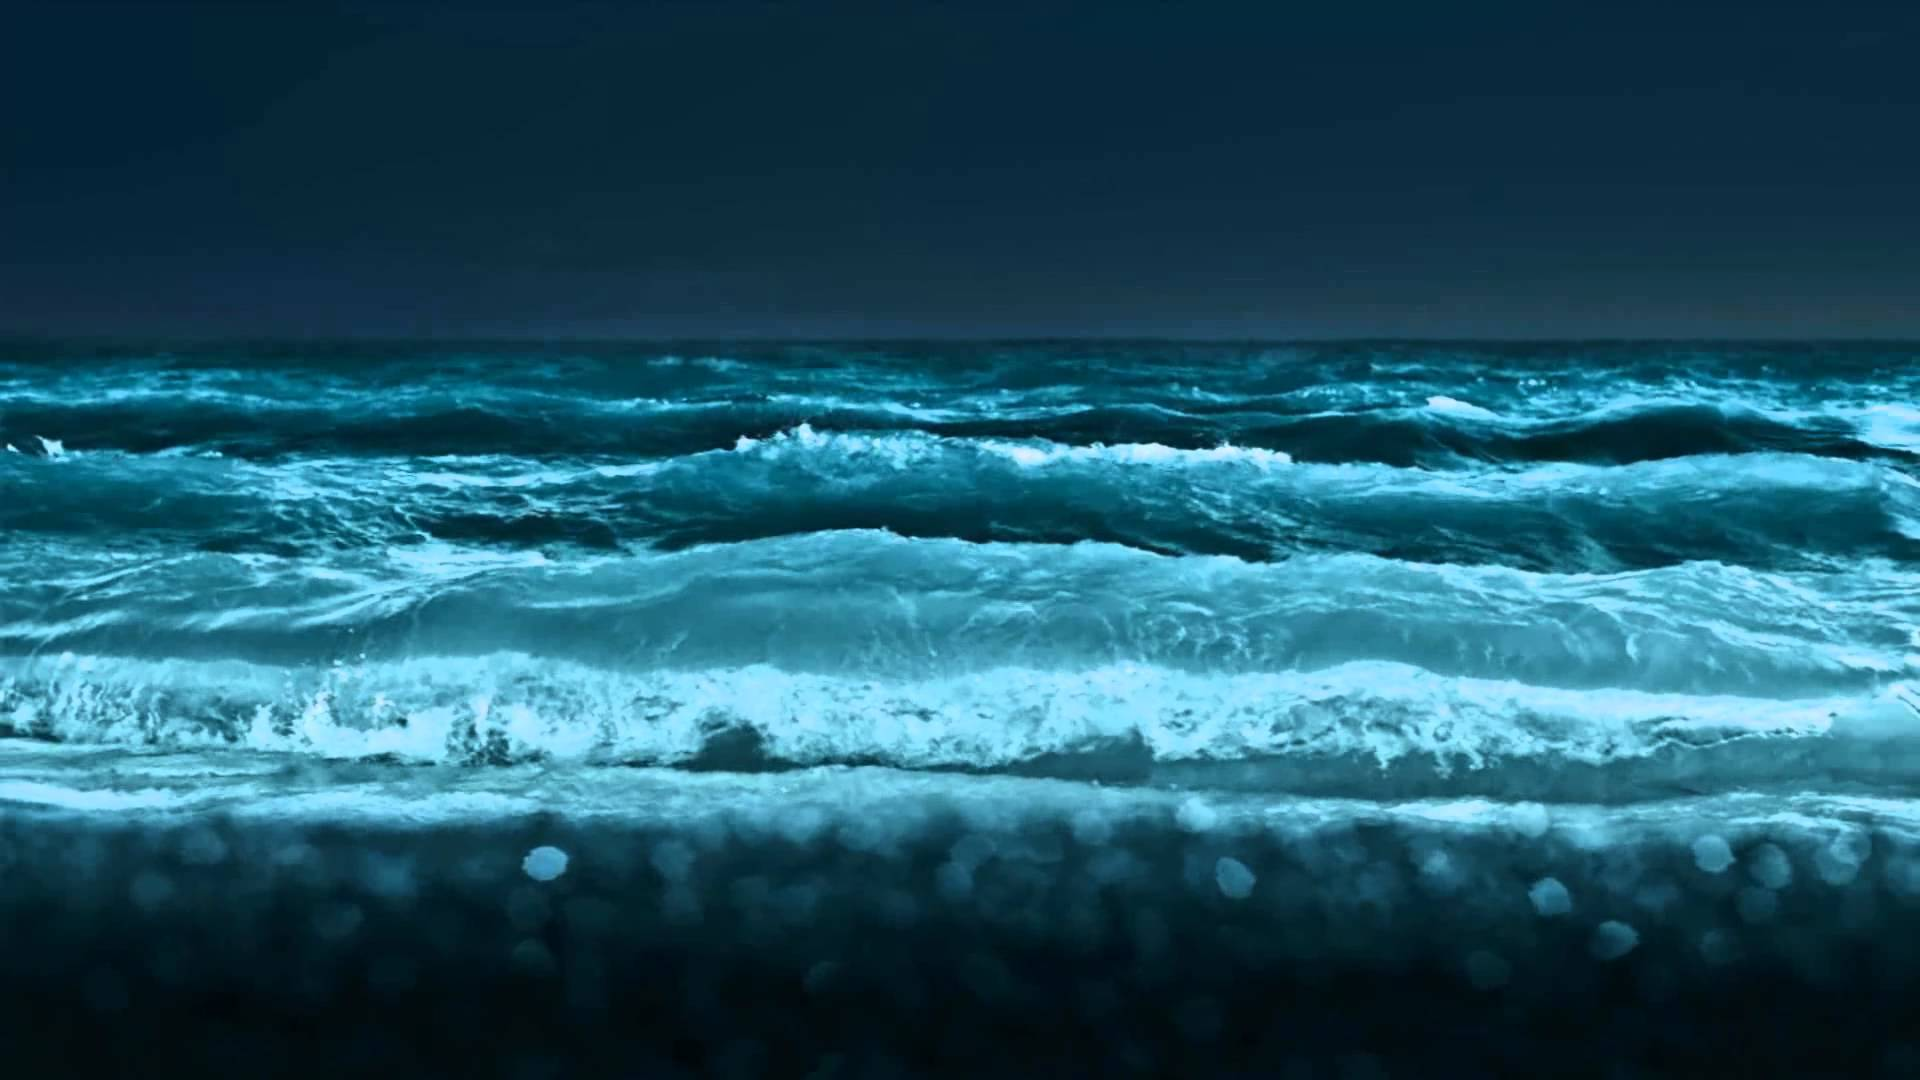 Moving Ocean Wallpaper